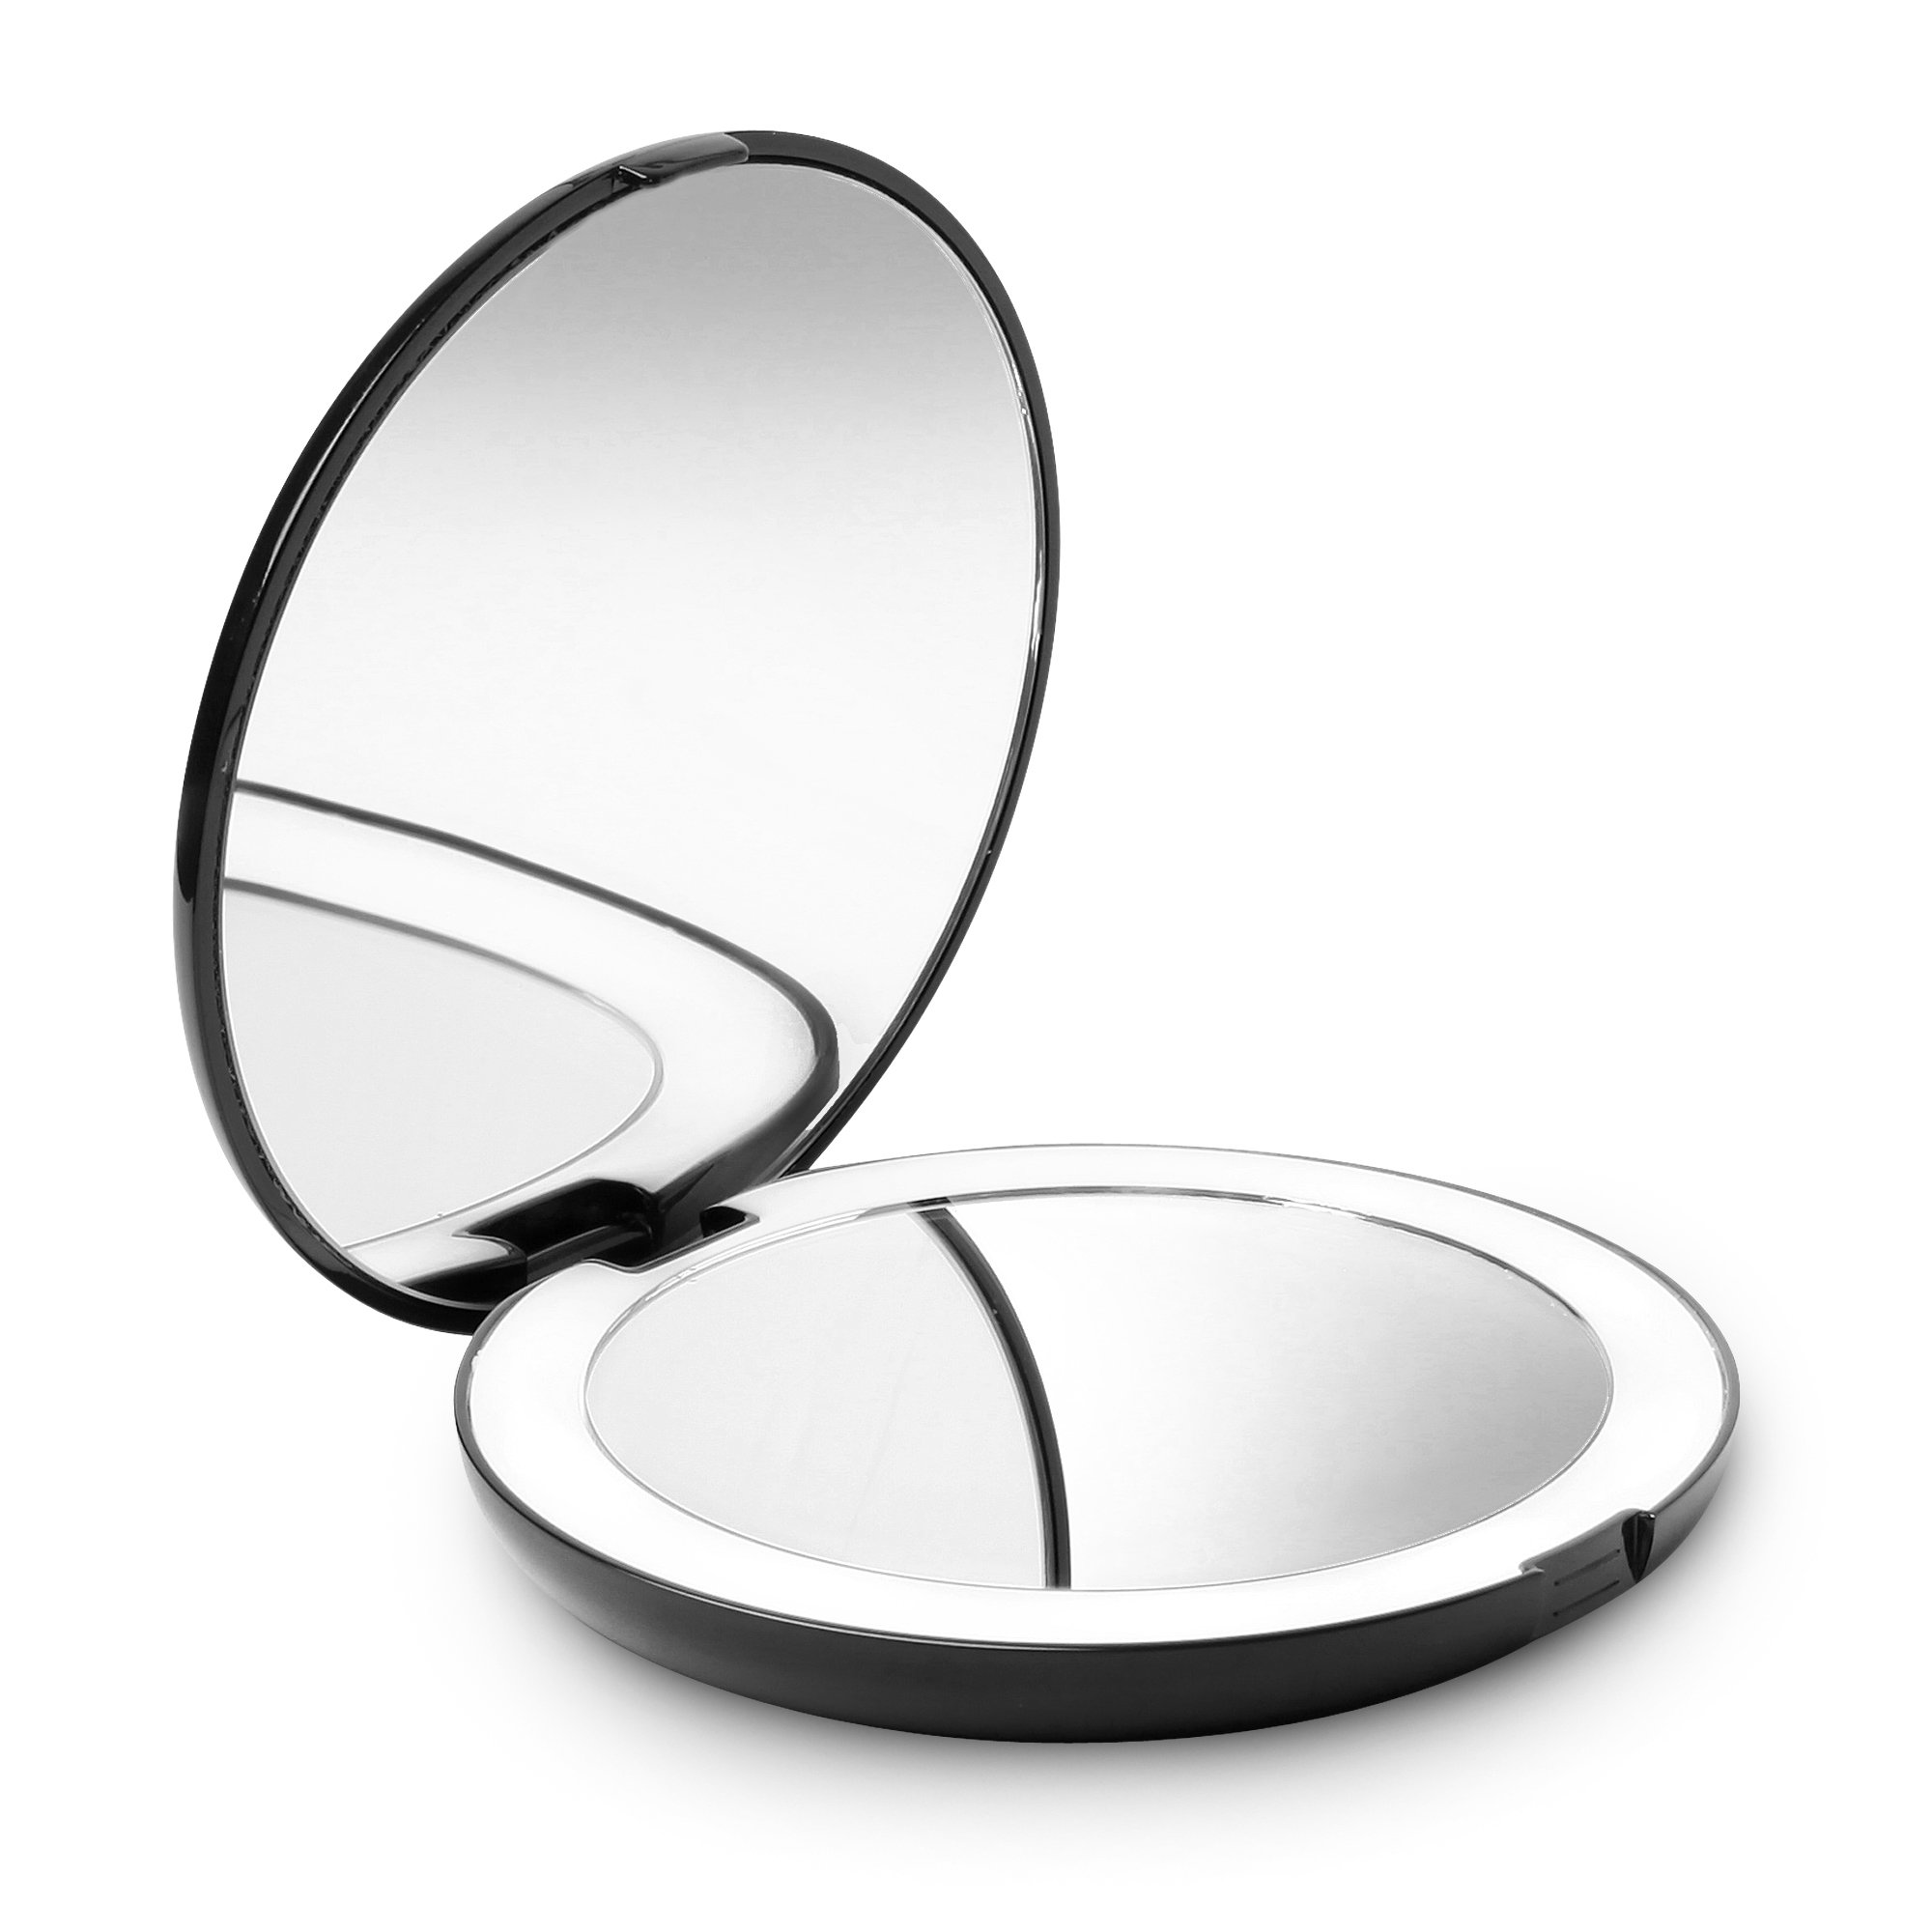 "Fancii LED Lighted Travel Makeup Mirror, 1x/10x Magnification - Daylight LED, Compact, Portable, Large 5"" Wide Illuminated Folding Mirror by Fancii (Image #1)"